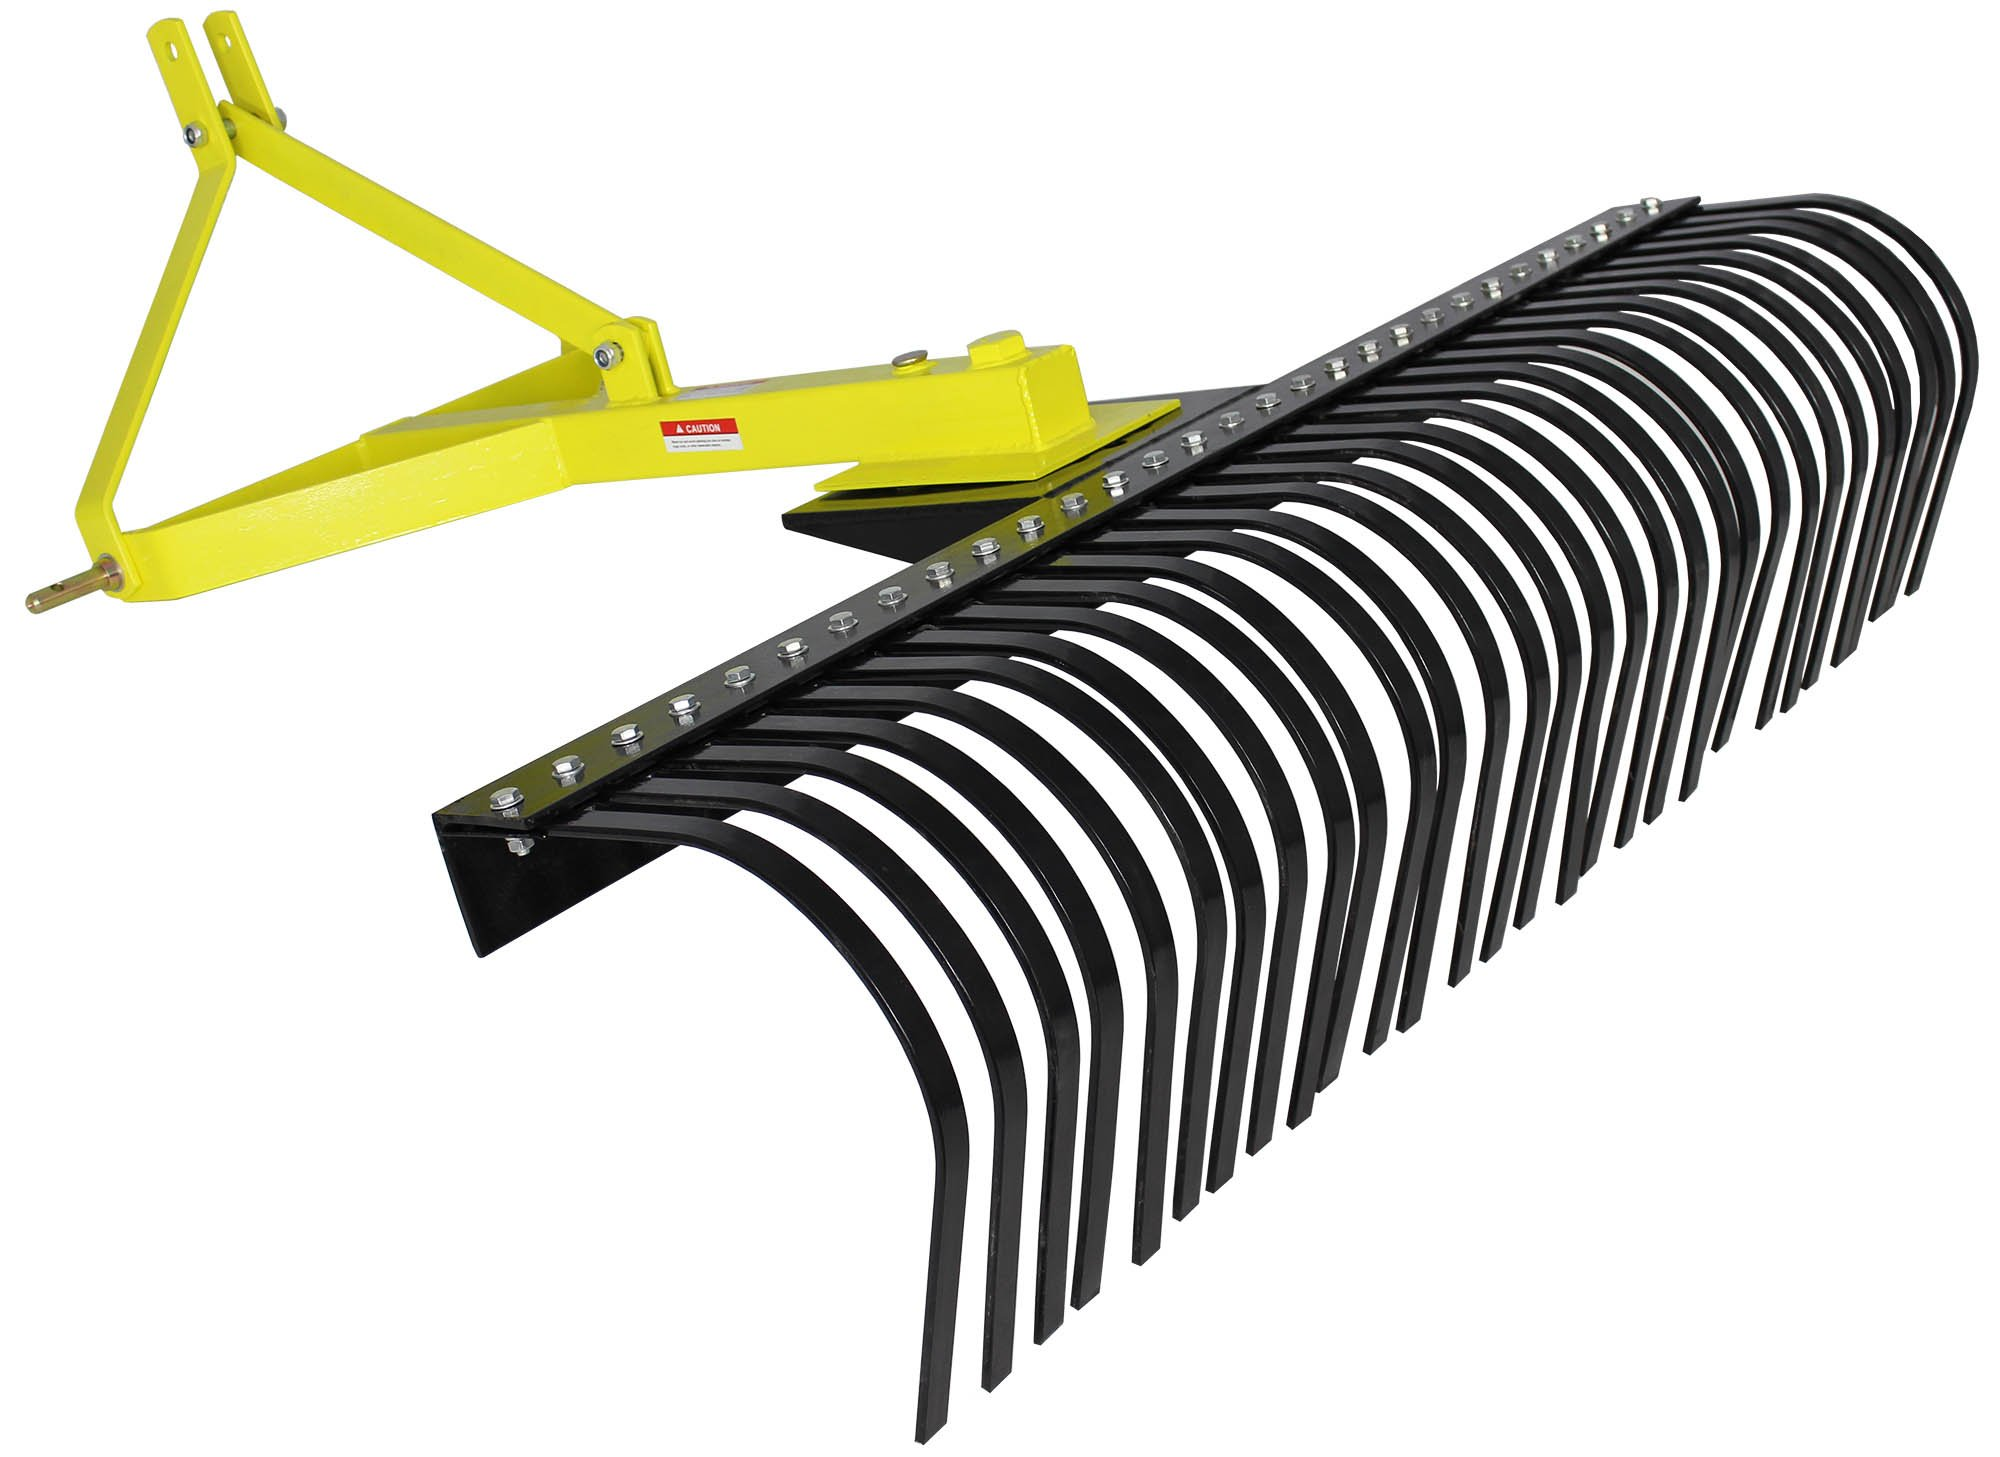 Titan Attachments Landscape Rock Rake 3 Point Soil Gravel Lawn Tow Behind Compact Tractor 5ft York by Titan Attachments